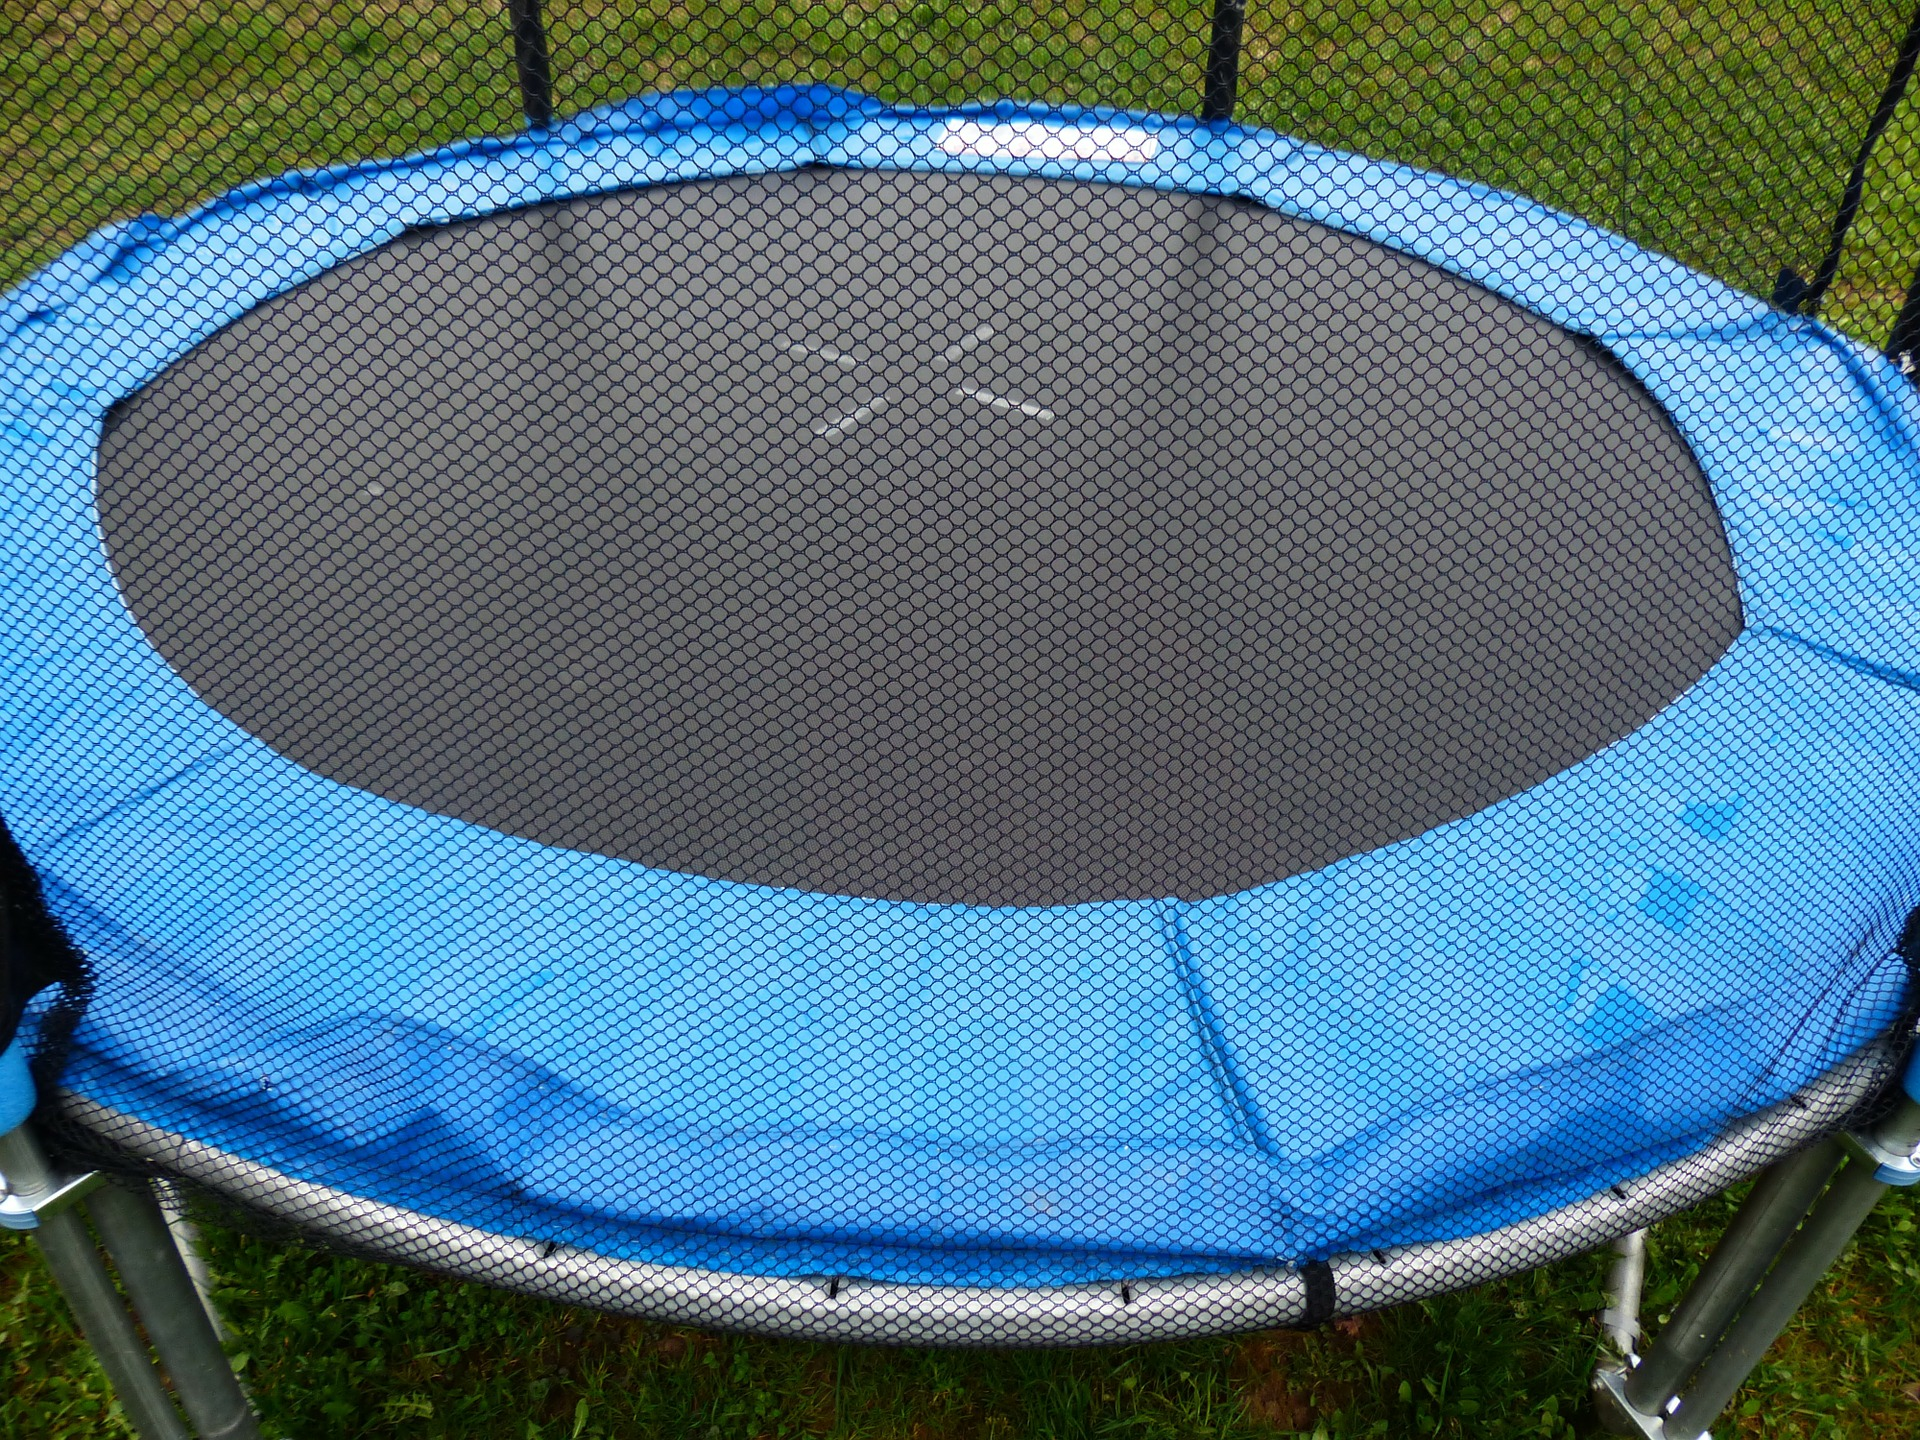 Trampoline Removal Dallas - Eagle Cleanup - Garage and yard cleanup. Construction site cleanup. Professional trash removal services for your home or business.